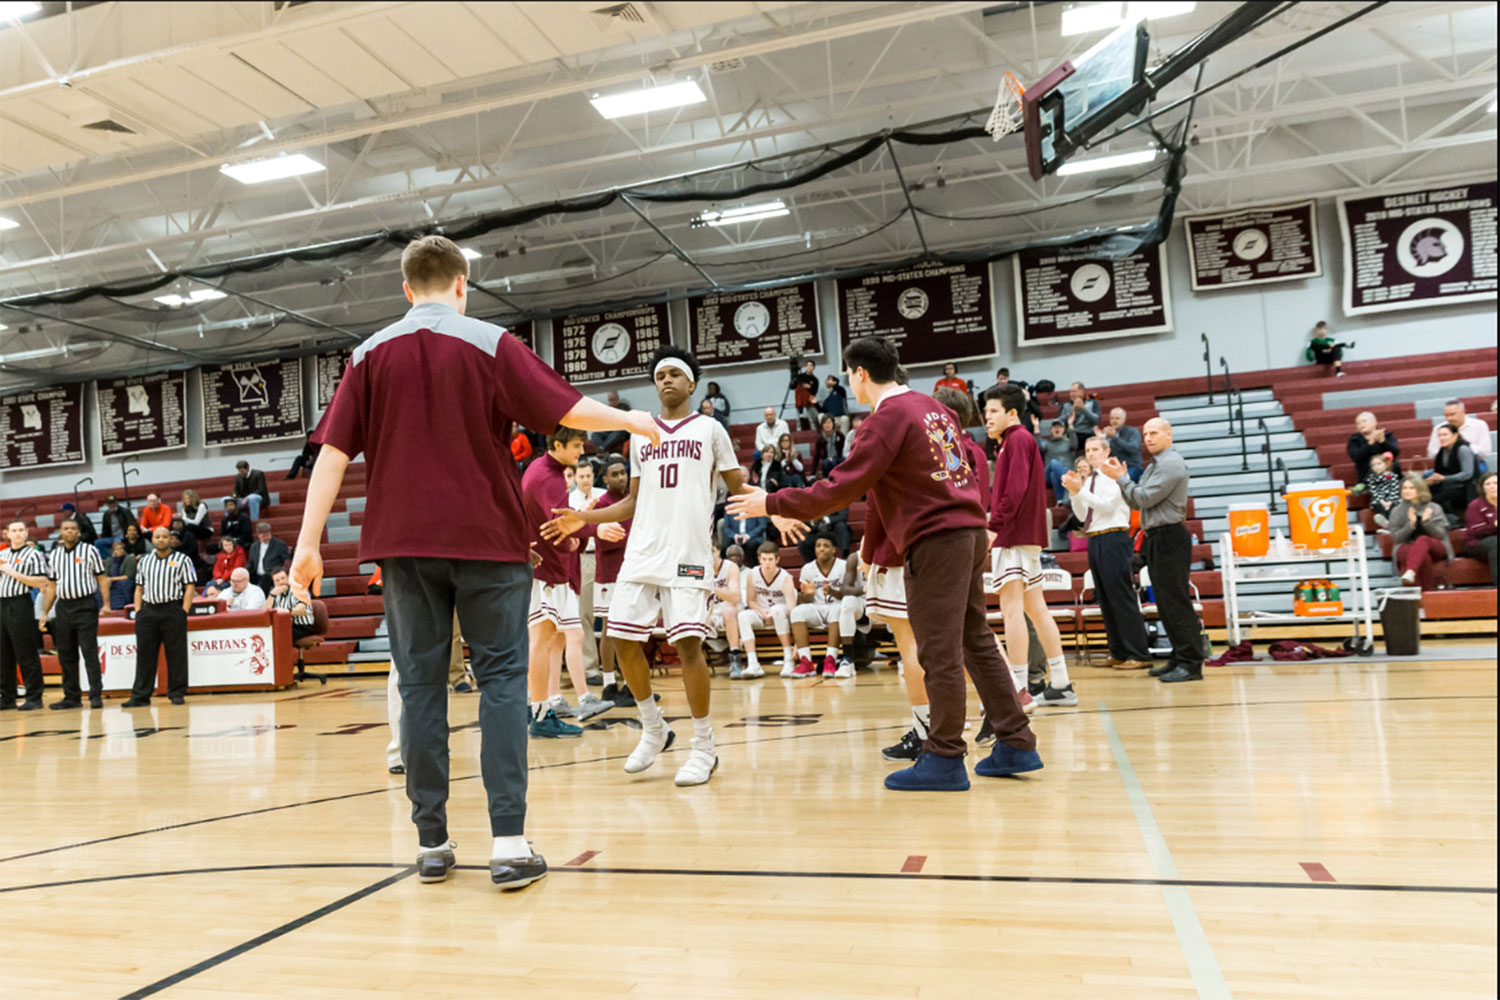 Senior Cameron Range cheers on the varisty basketball team after a basket.